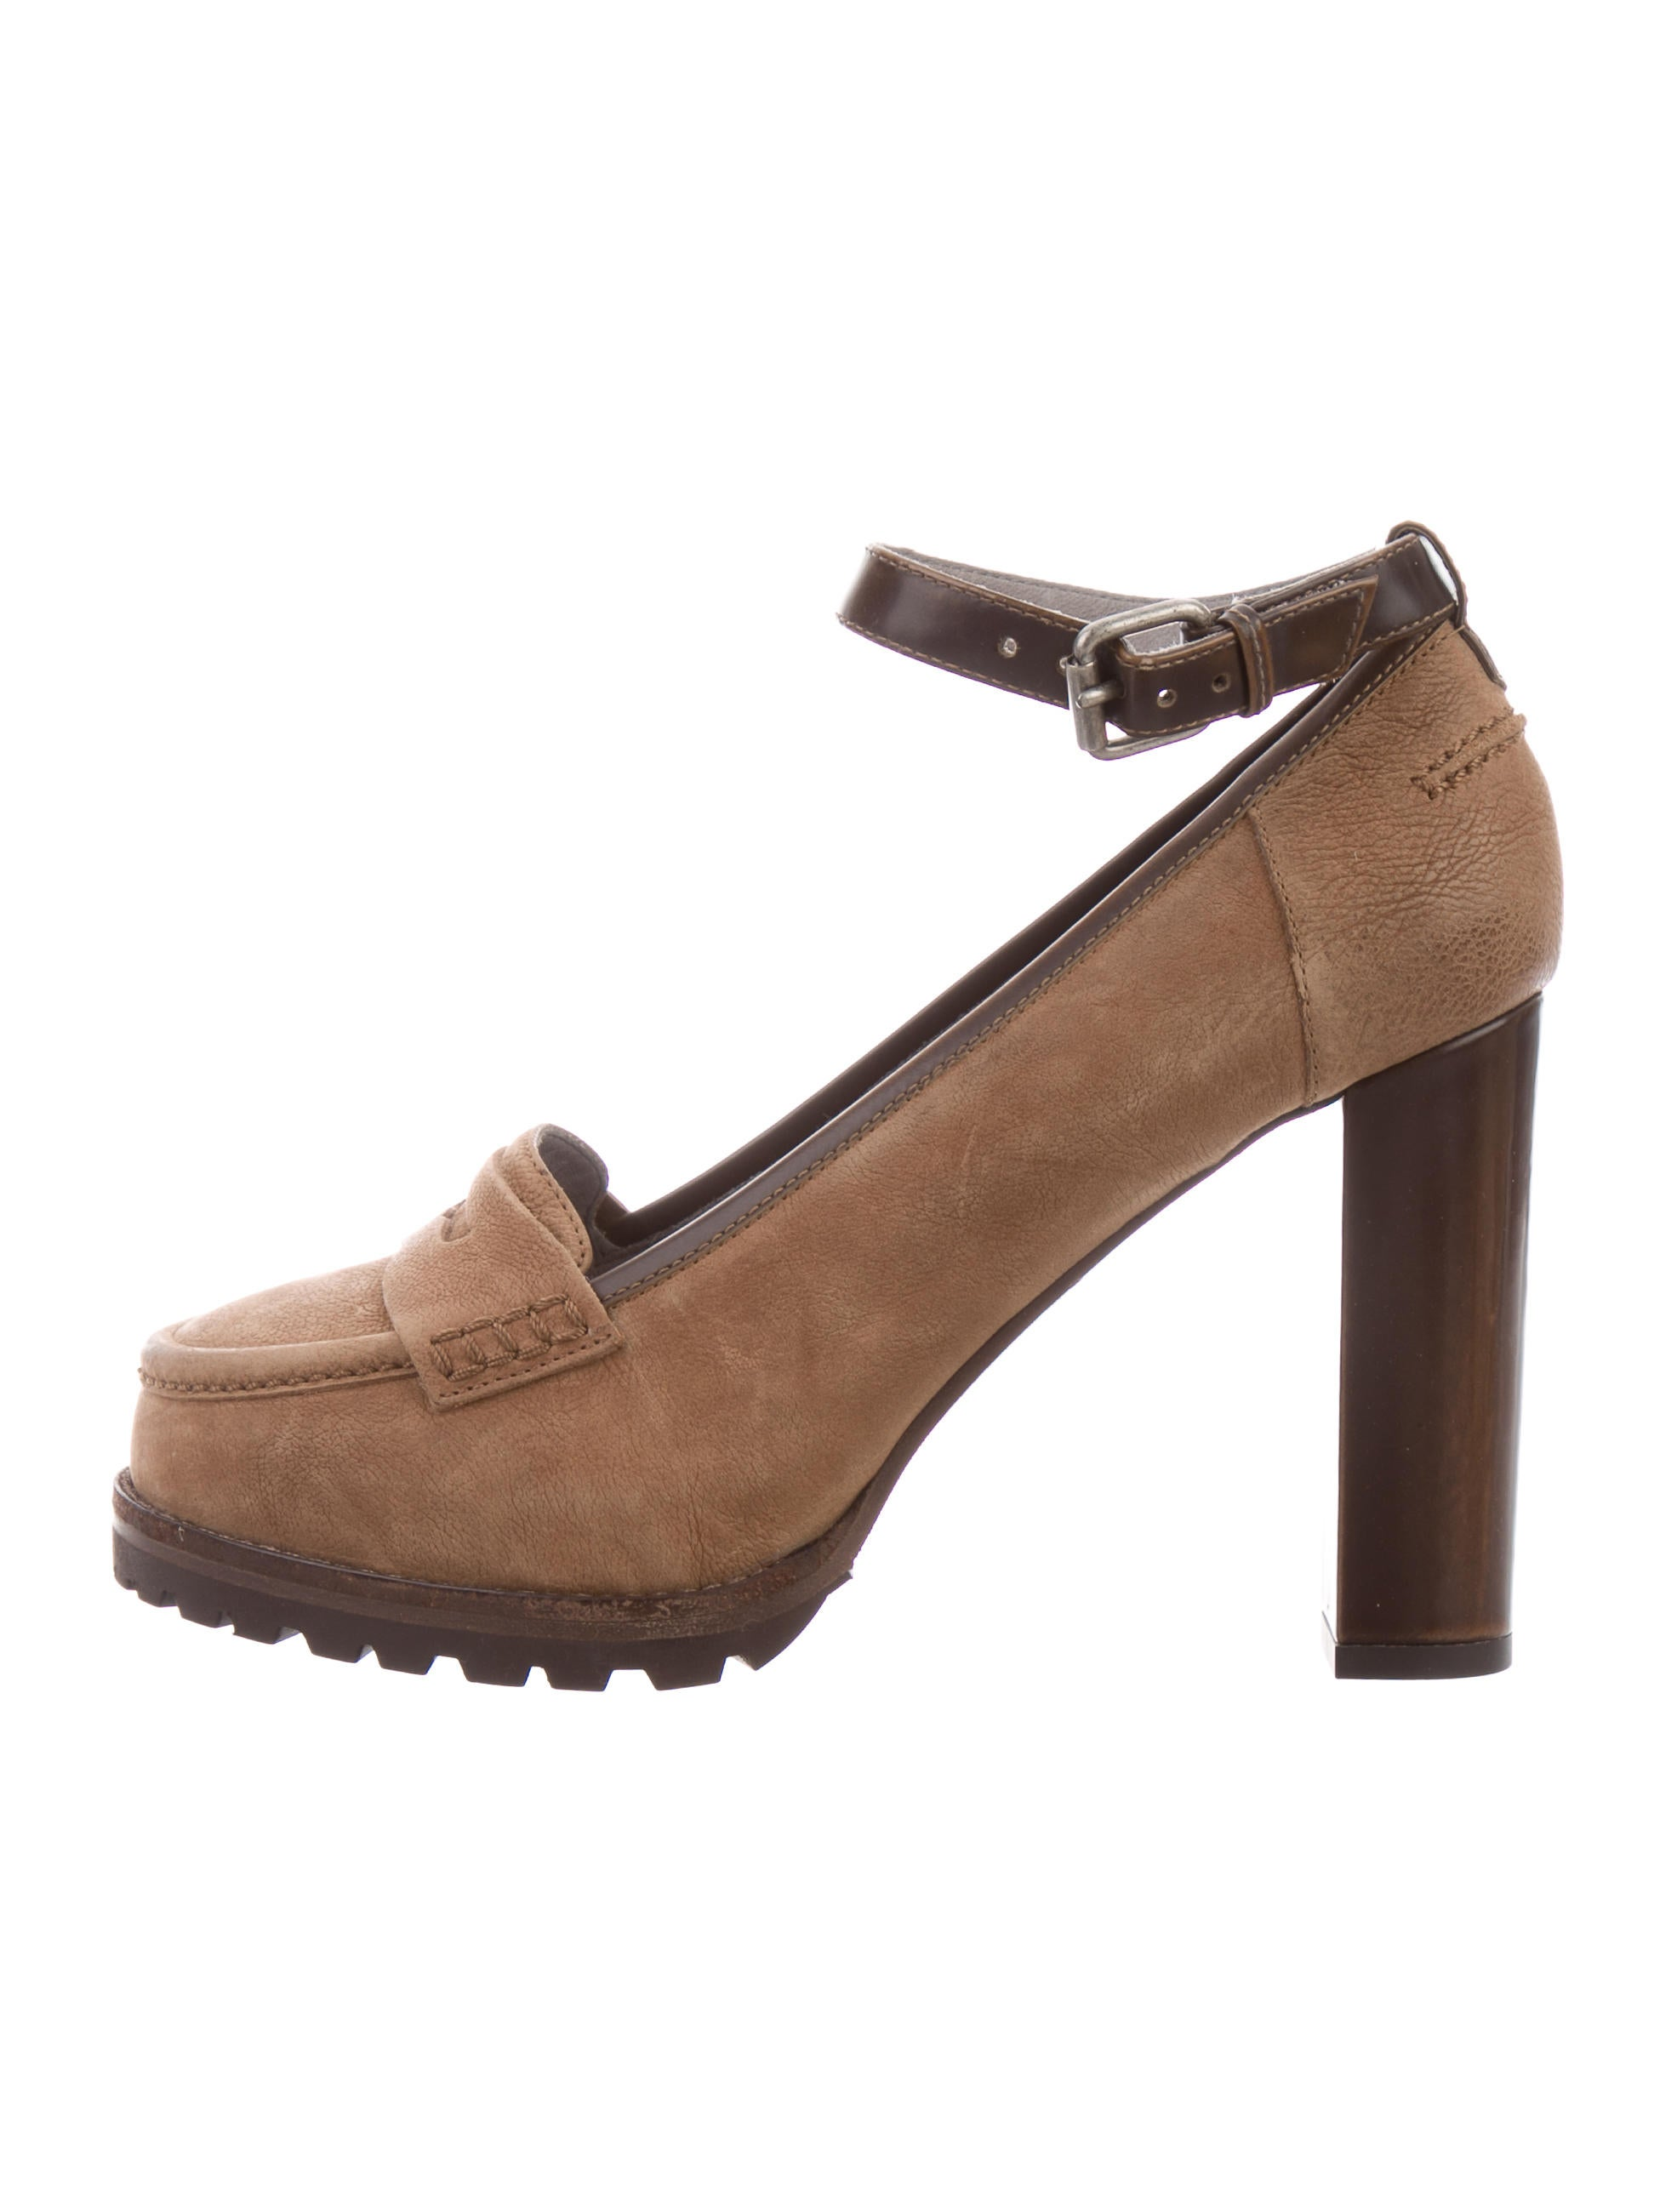 Brunello Cucinelli Leather Platform Pumps cheap sale eastbay sale 2015 new QbH8ha